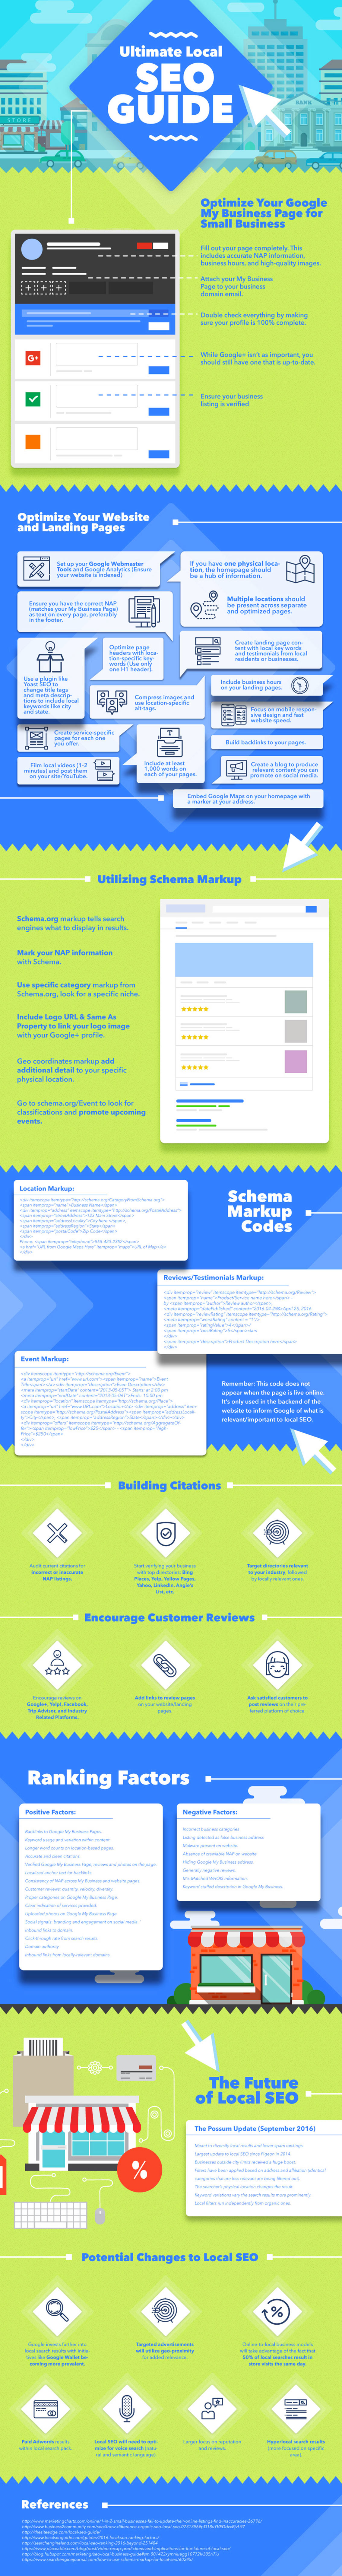 Local SEO Tips for Small Businesses Infographic